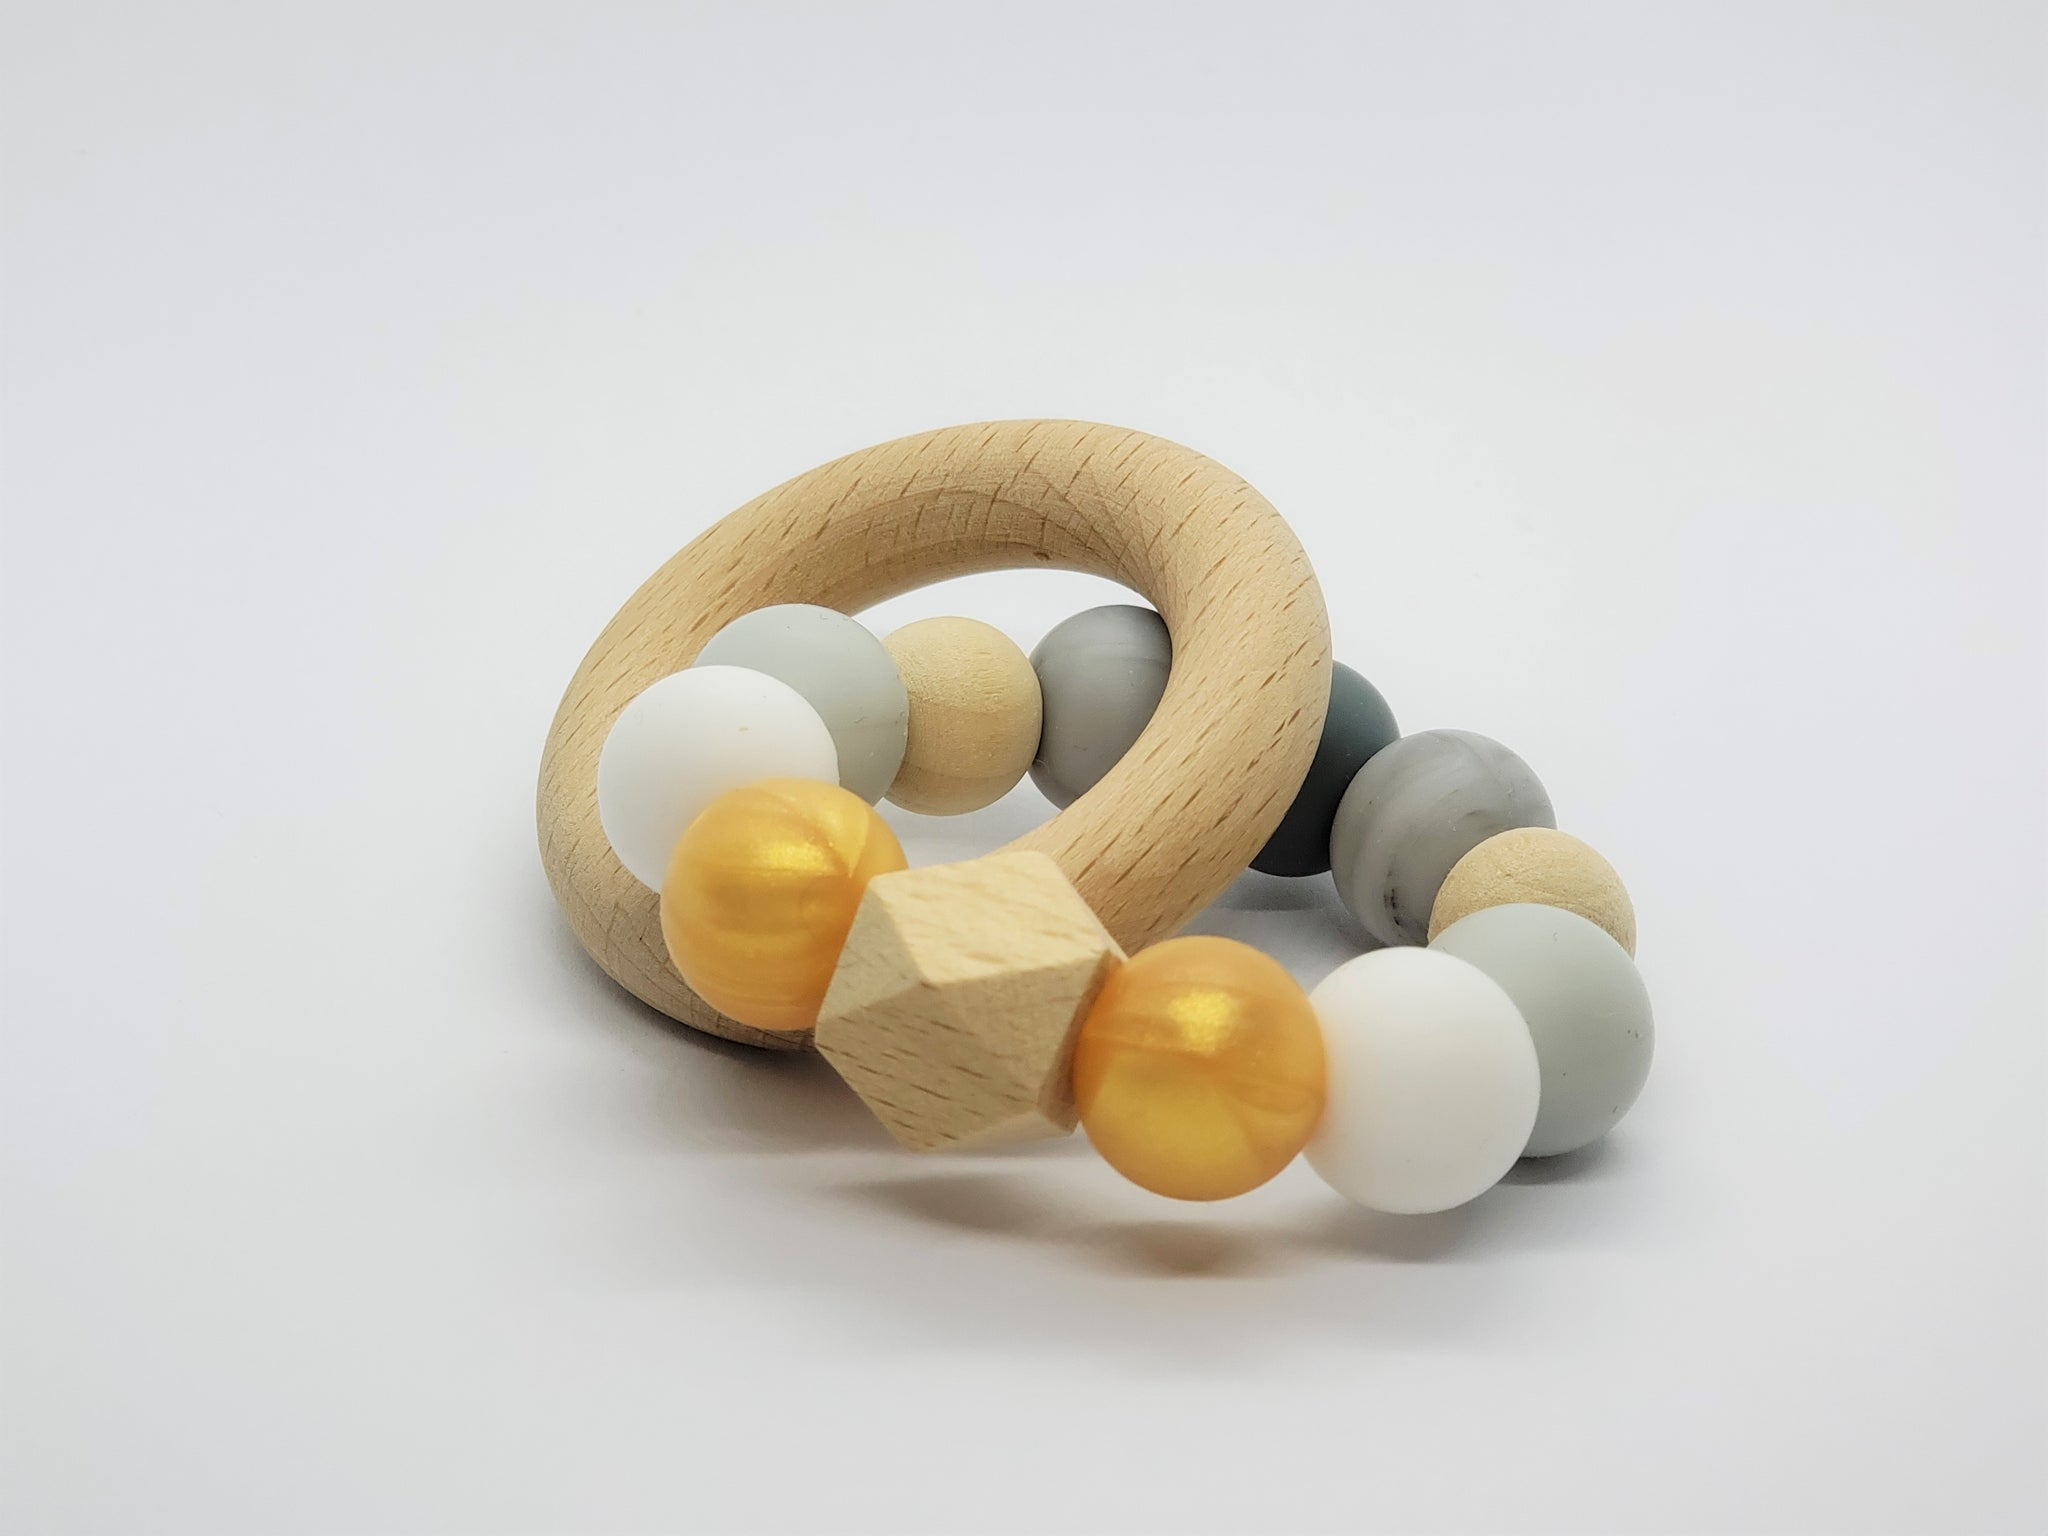 Silicone Teether Bracelet with Wooden Ring - Petite - Meteorite